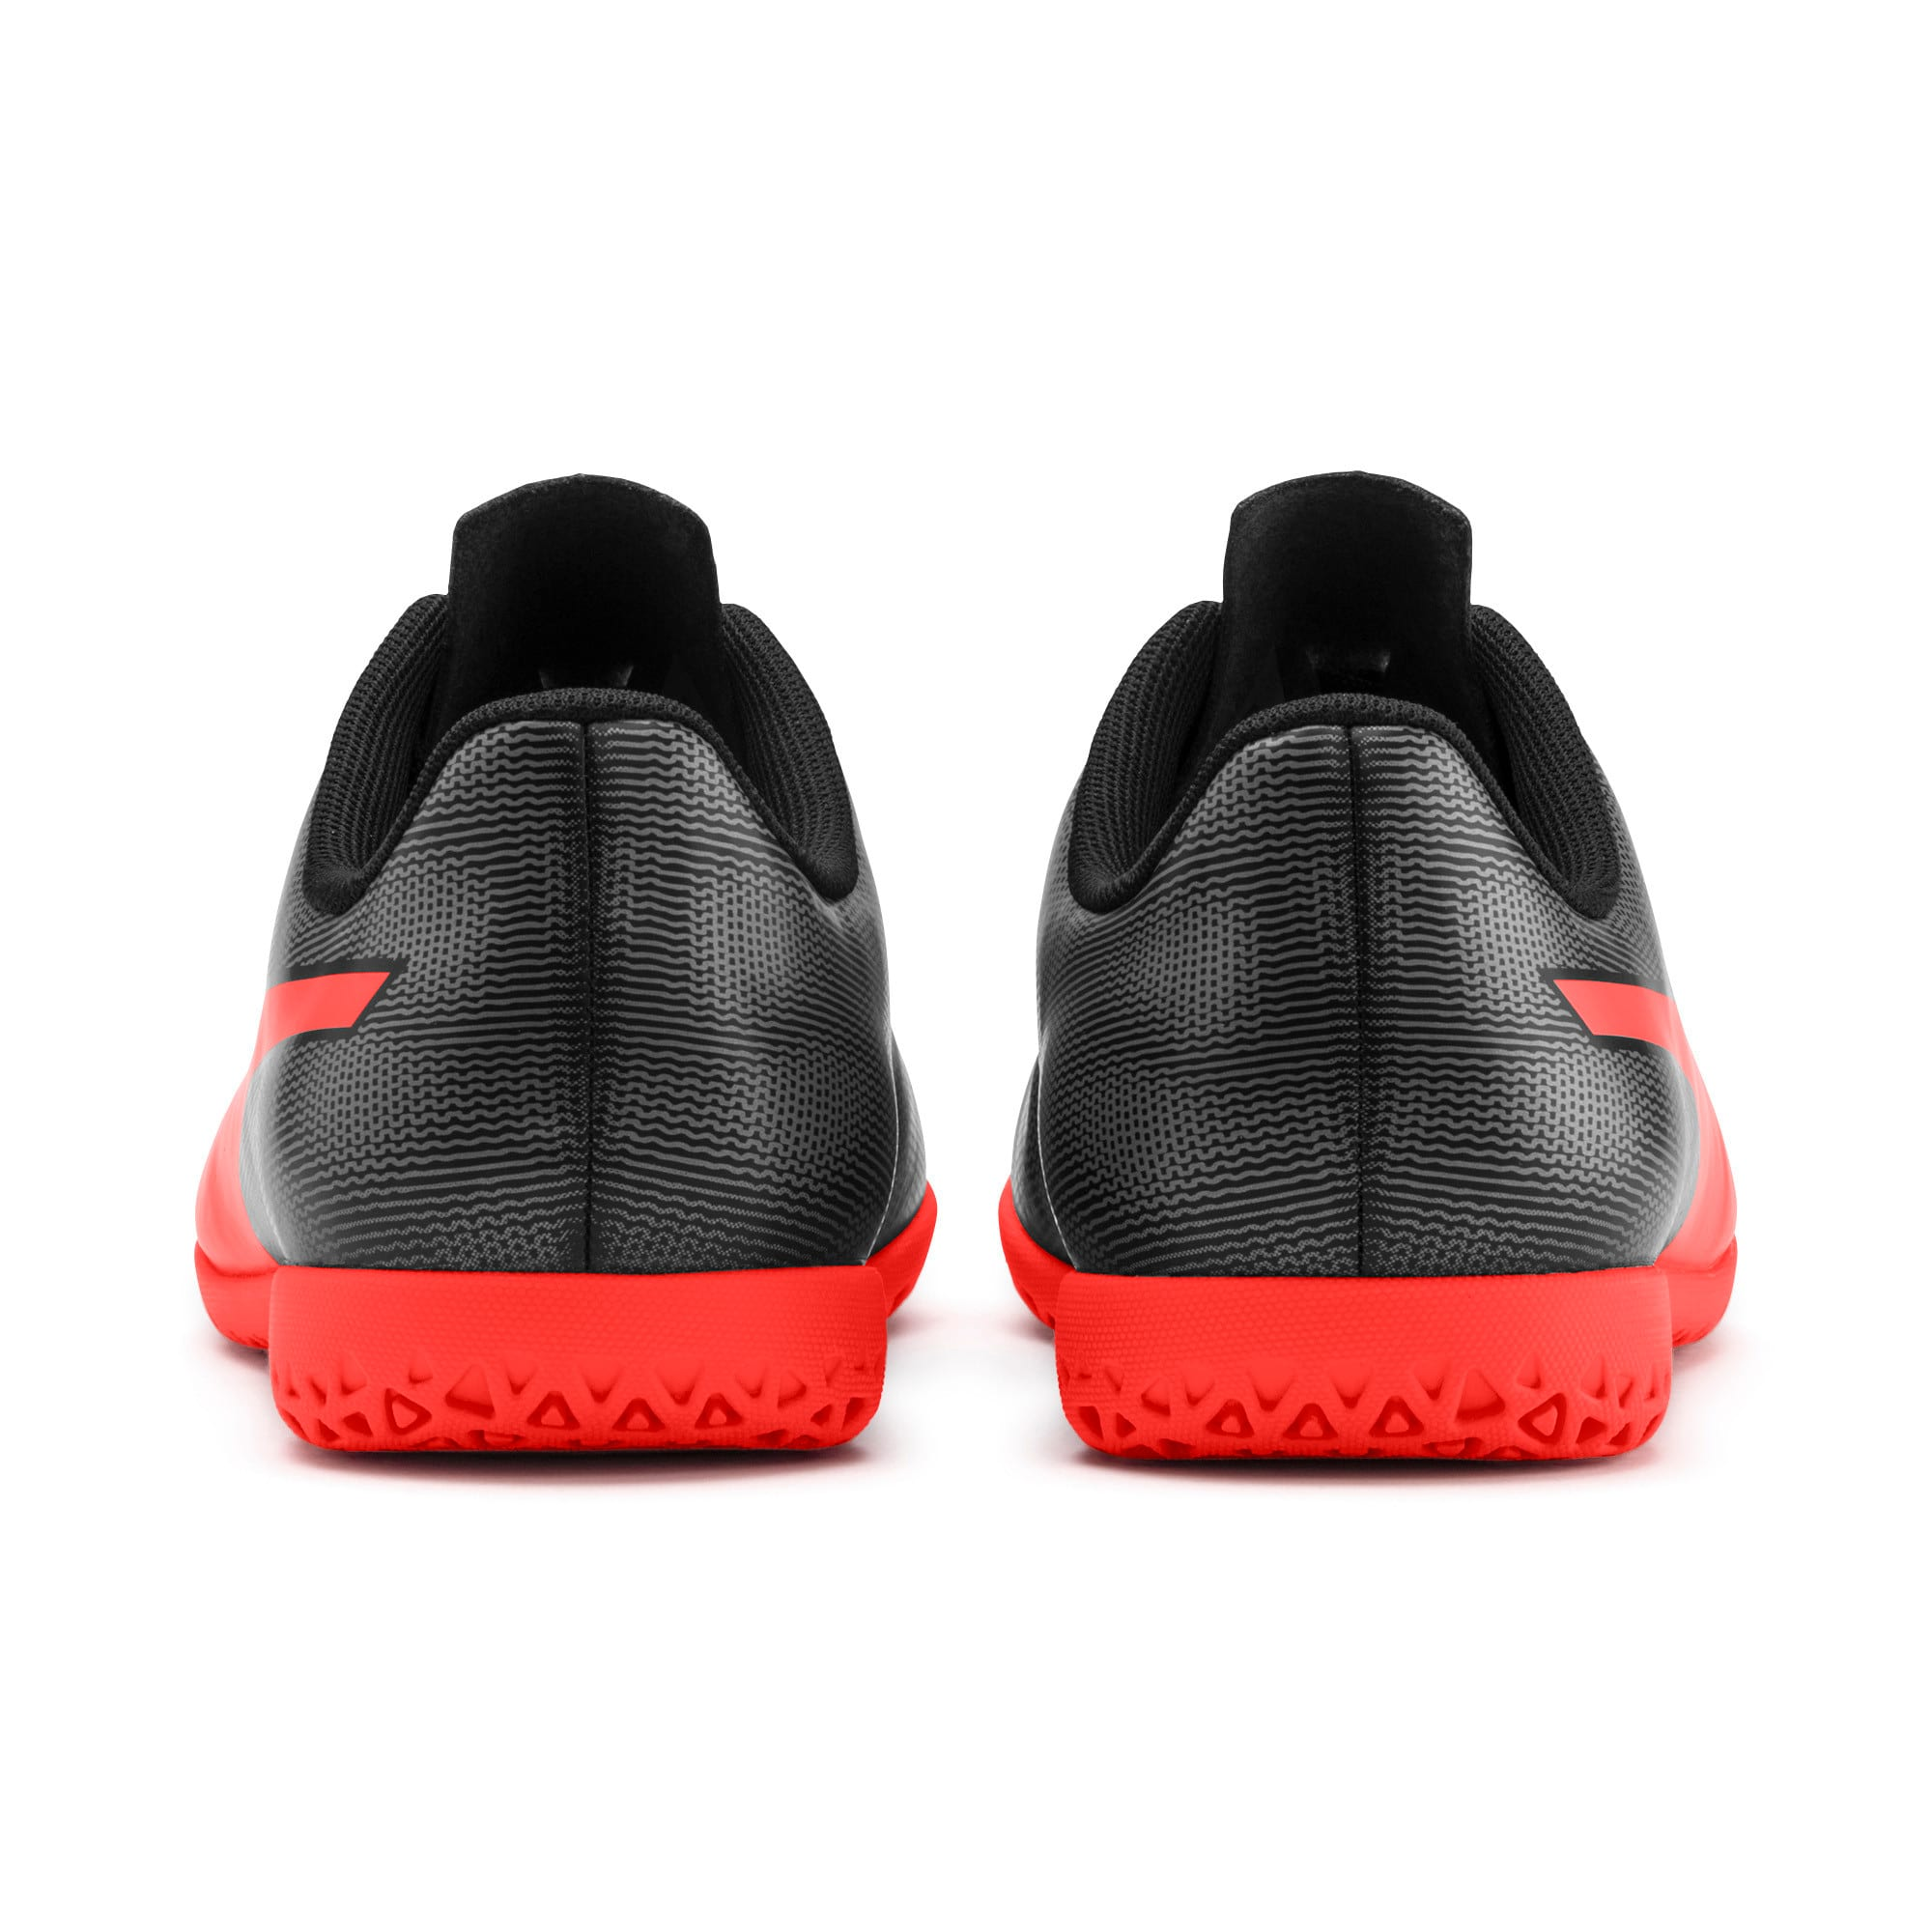 Thumbnail 3 of Rapido IT Youth Football Boots, Black-Nrgy Red-Aged Silver, medium-IND